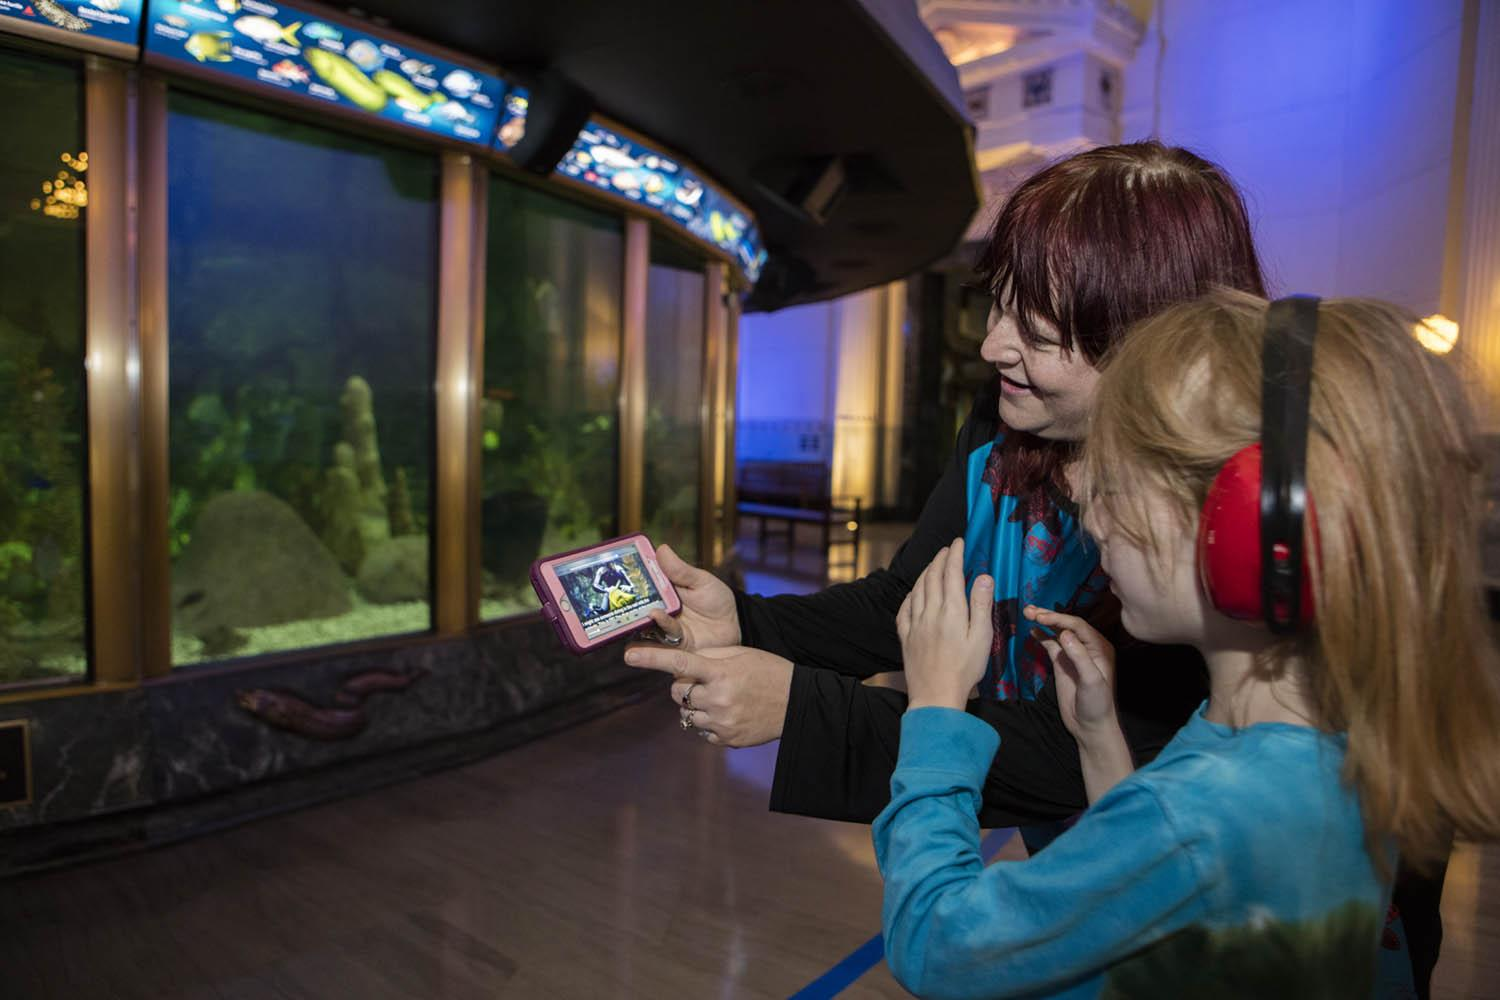 A mother and daughter explore Shedd's Sensory-Friendly App, designed for guests with autism or a sensory processing disorder, in front of the aquarium's Caribbean Reef exhibit. (Brenna Hernandez / Shedd Aquarium)